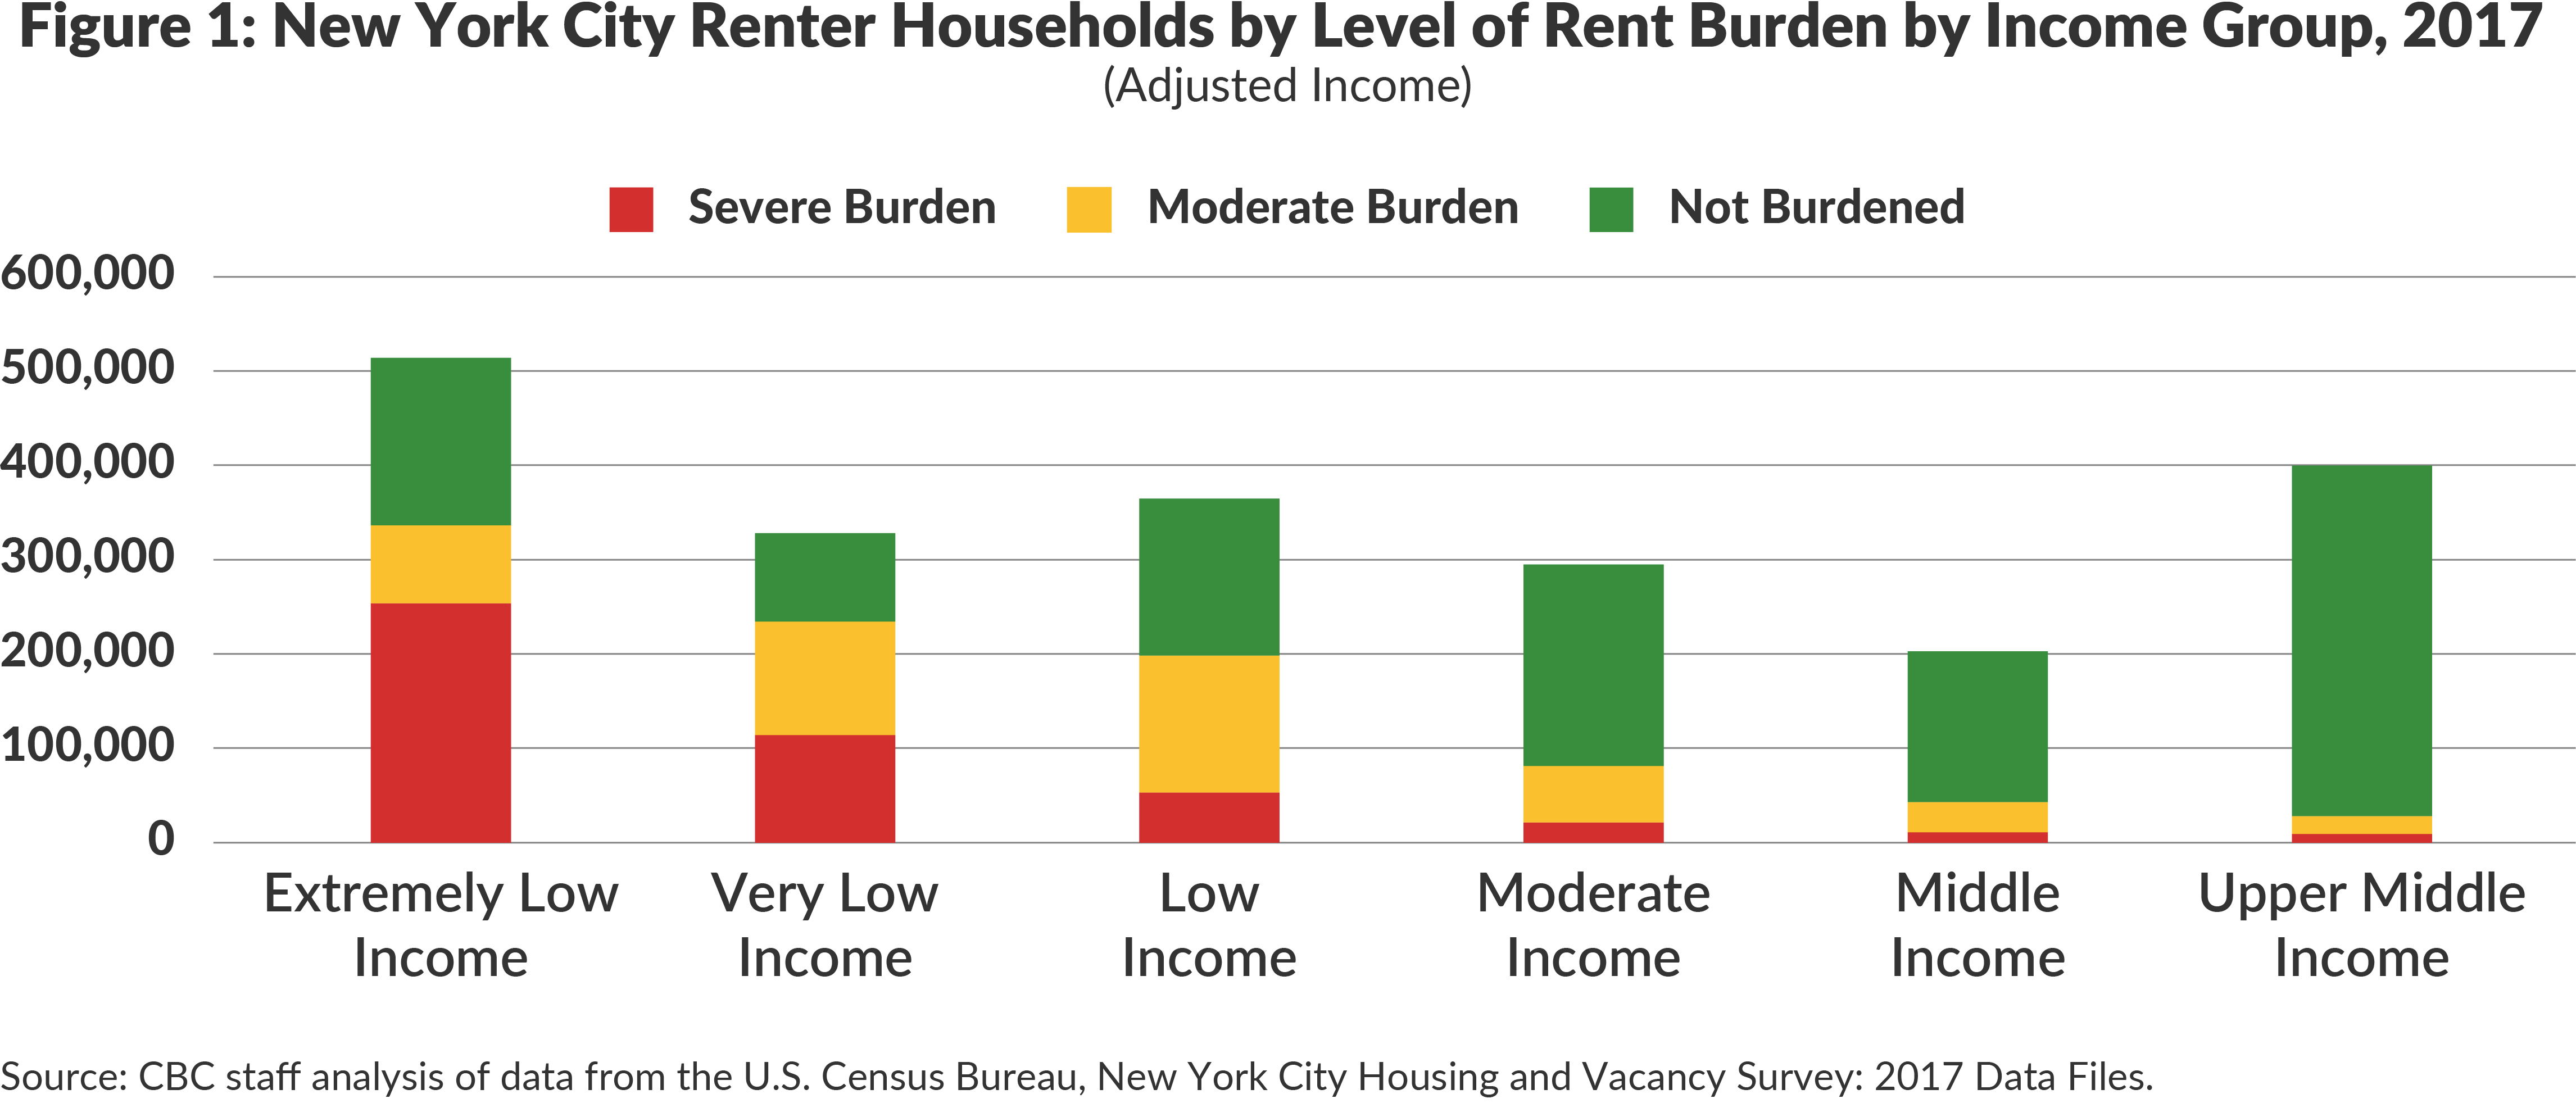 Figure 1. New York City Renter Households by Level of Rent Burden by Income Group, 2017 (Adjusted Income Measure)